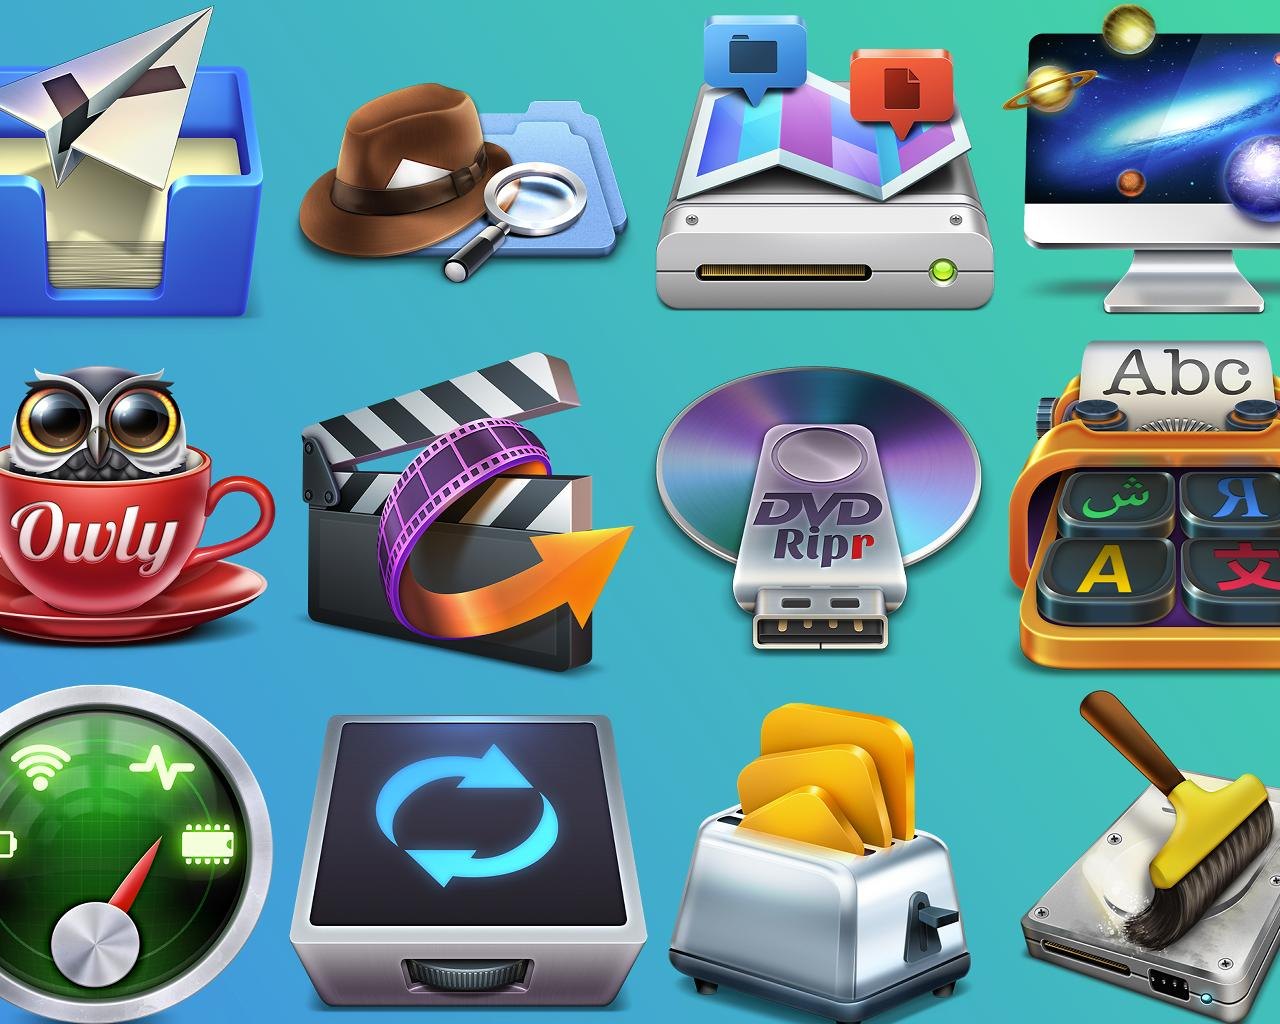 Stunning Mac OSX App Icon by weirdeetz - 85440